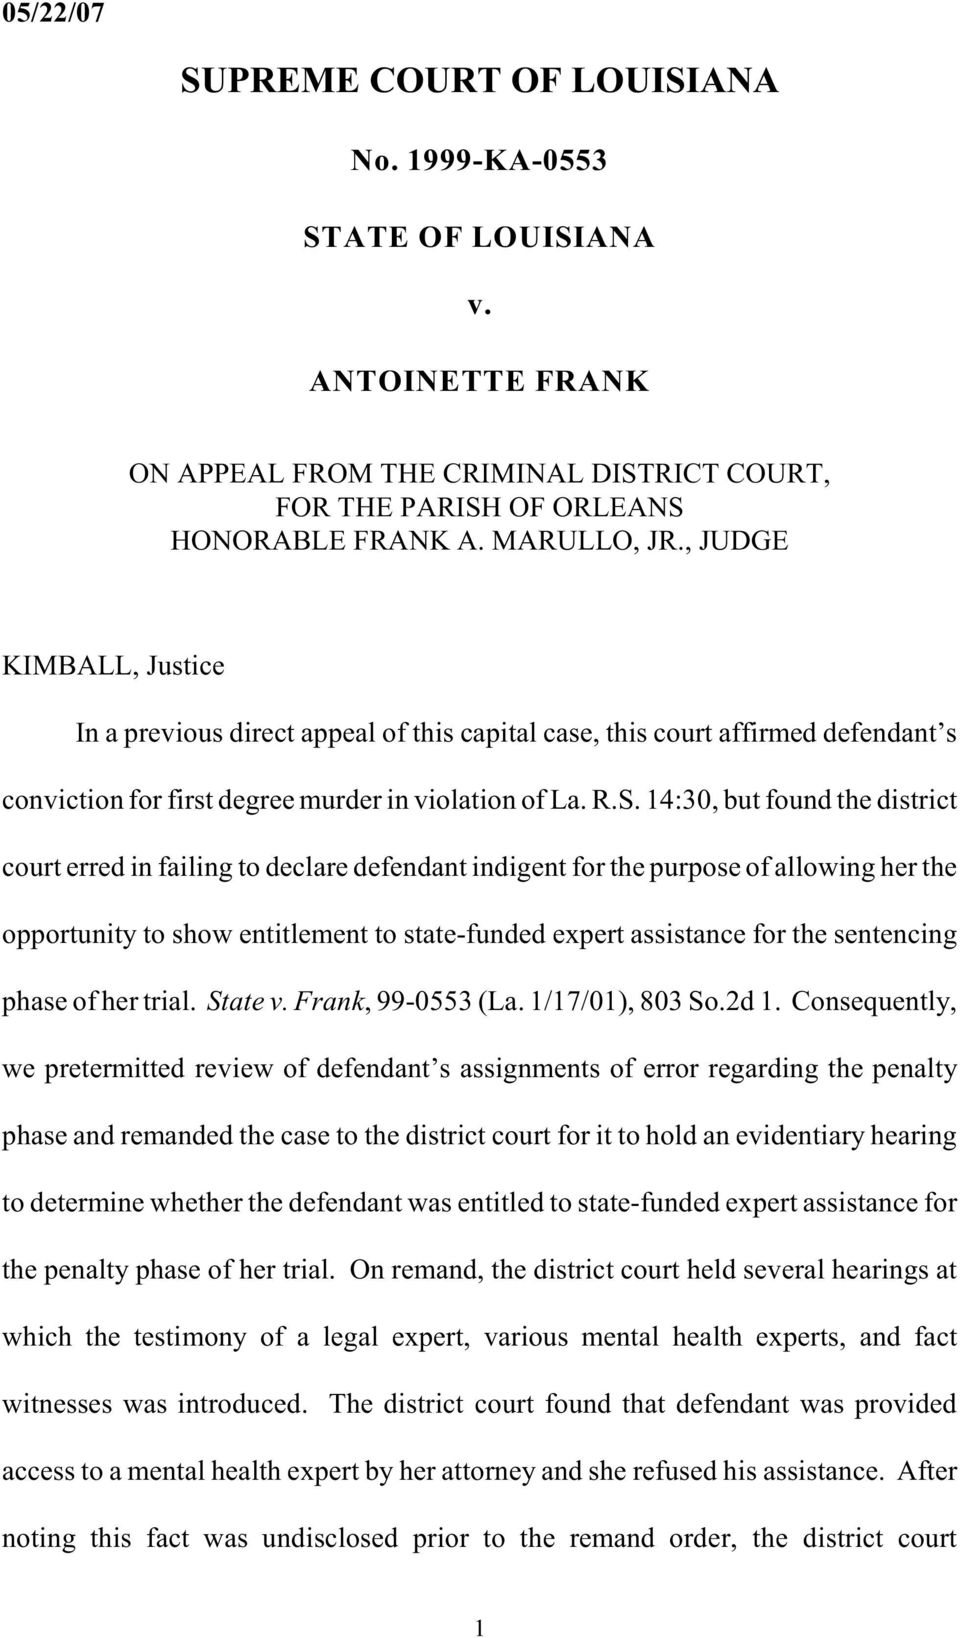 14:30, but found the district court erred in failing to declare defendant indigent for the purpose of allowing her the opportunity to show entitlement to state-funded expert assistance for the